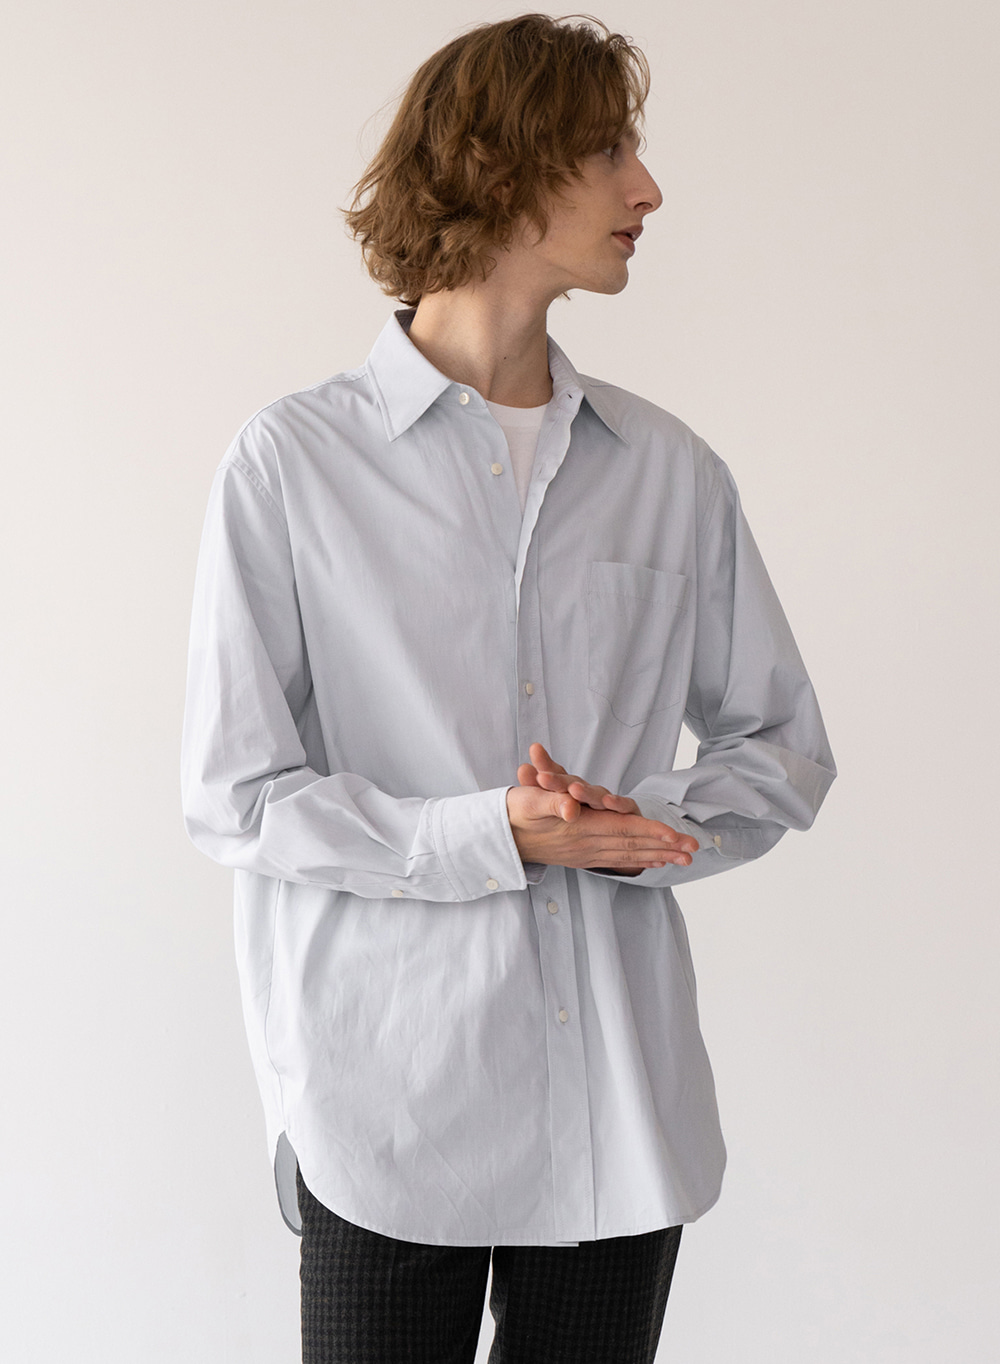 [FW20 ESSENTIAL] Premium Overshirt from Italy (CANCLINI) Pale-blue